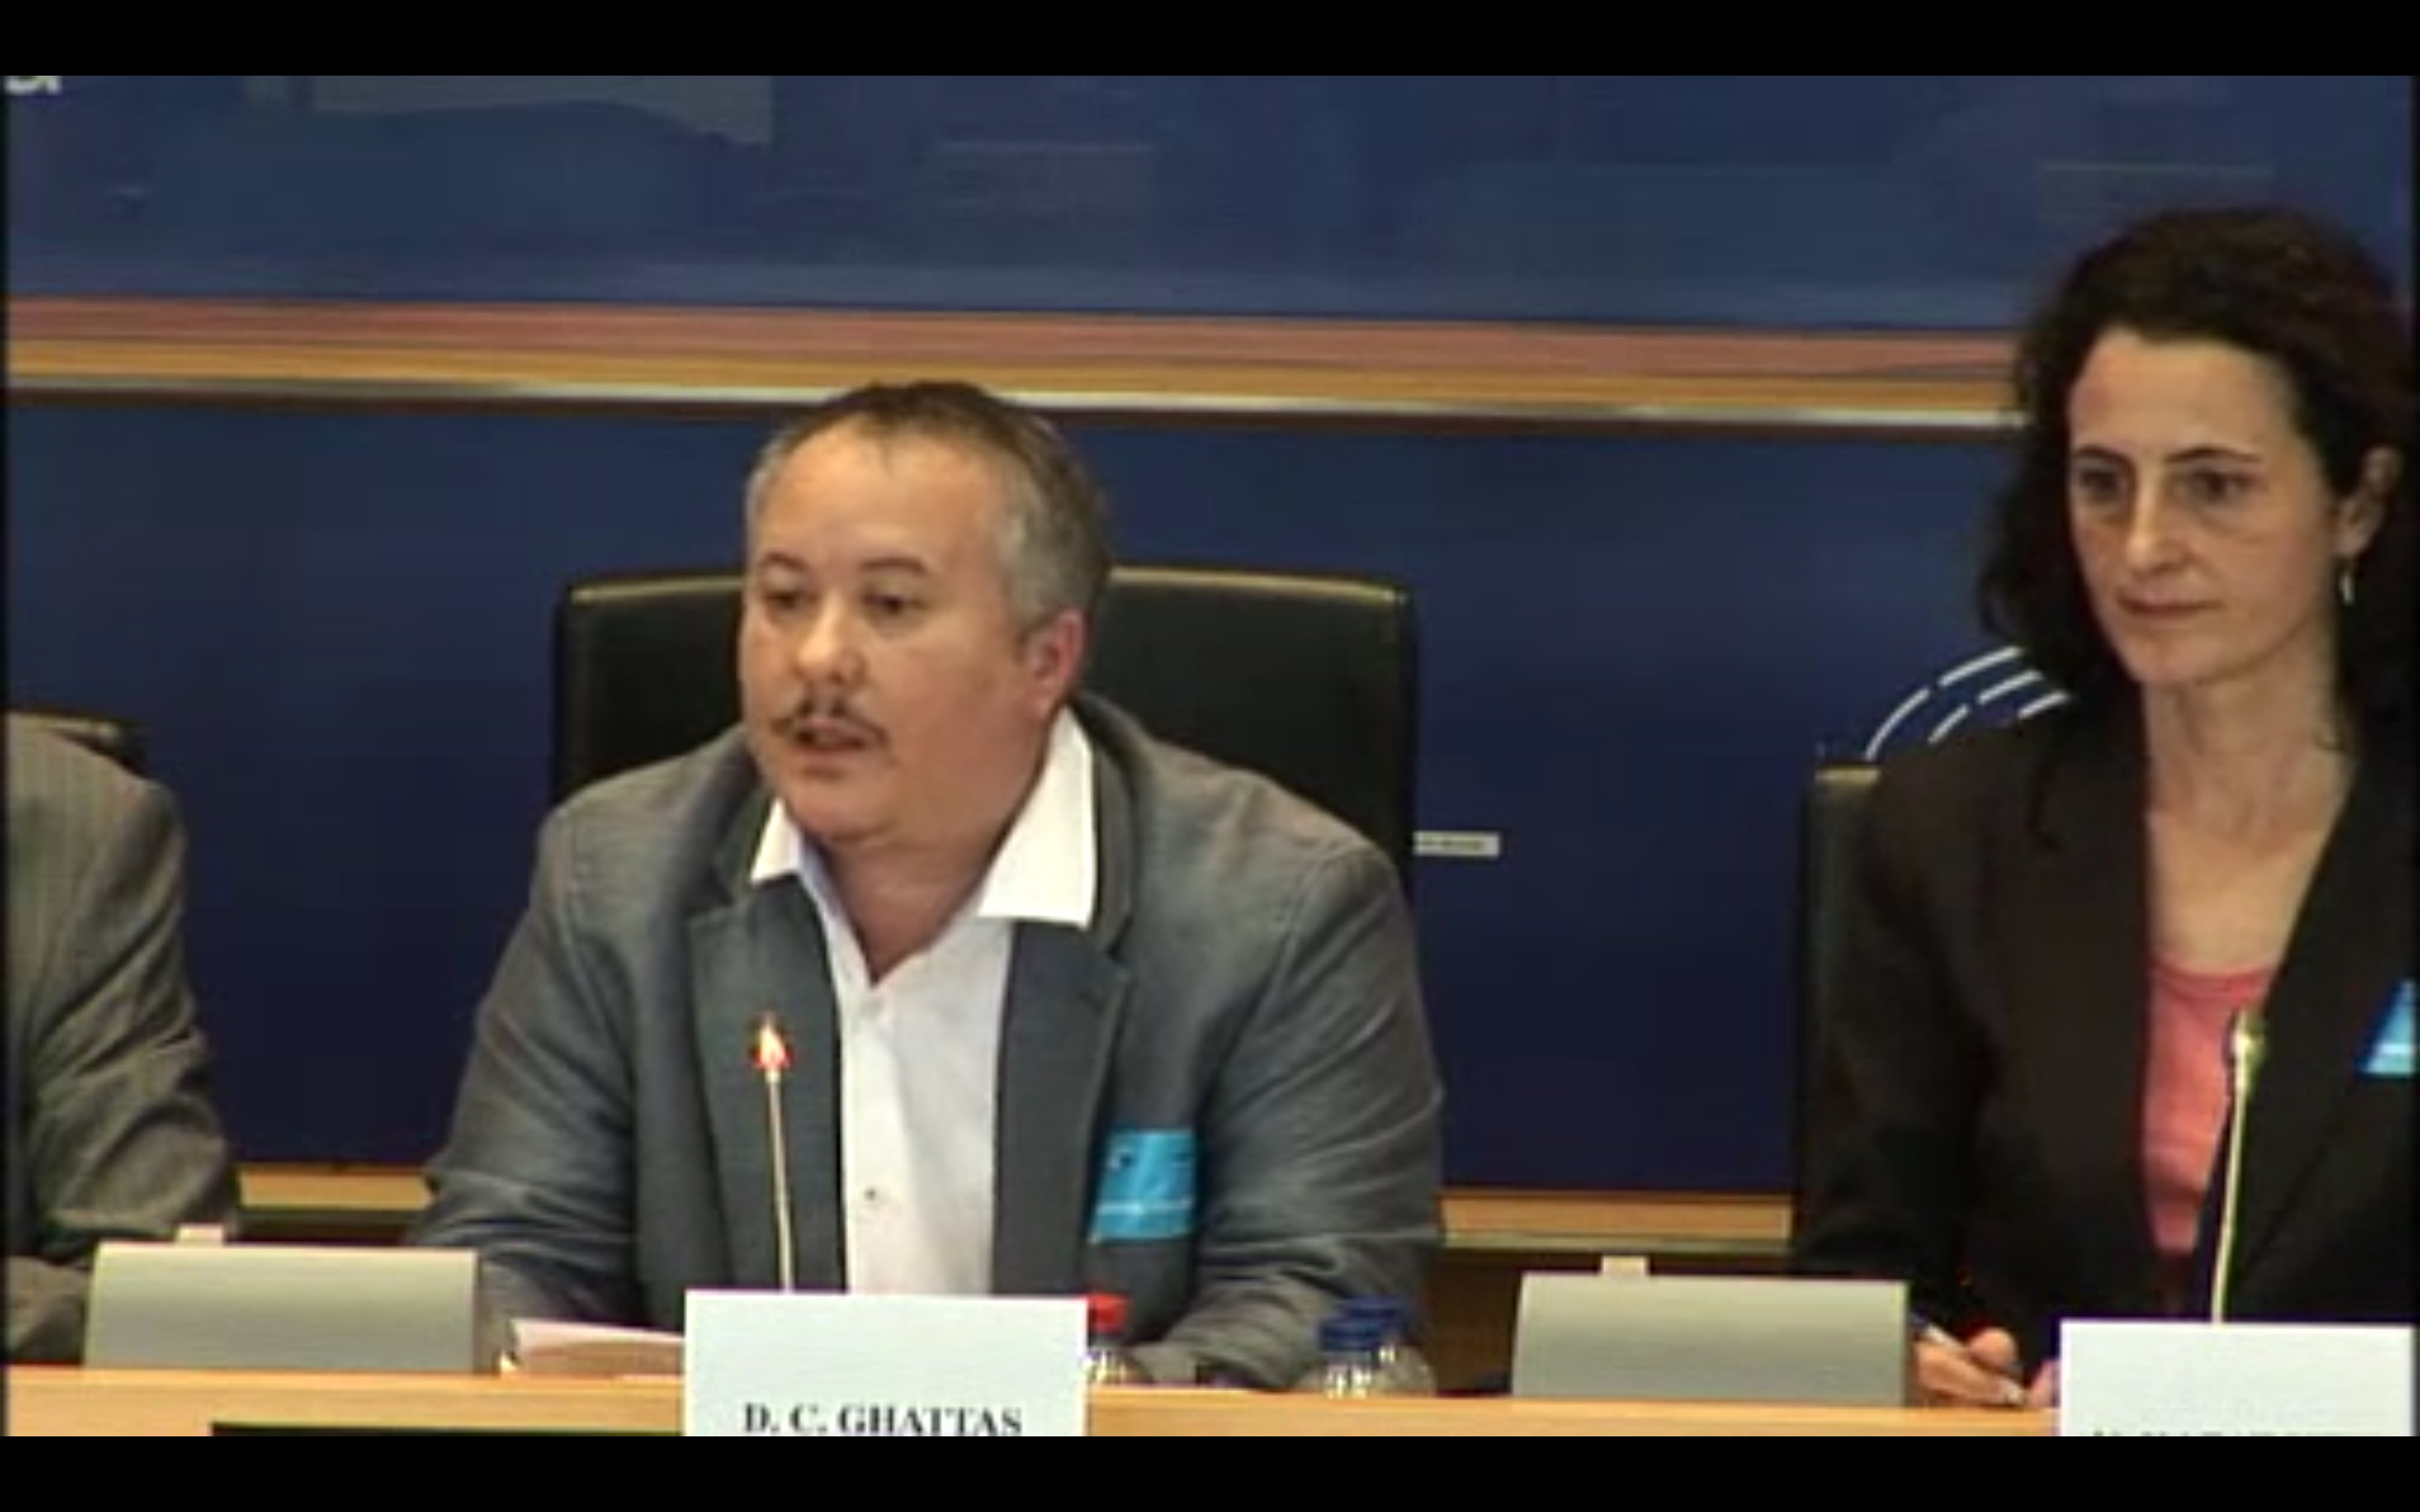 Intersex person speaks in the European Parliament for the first time ever today